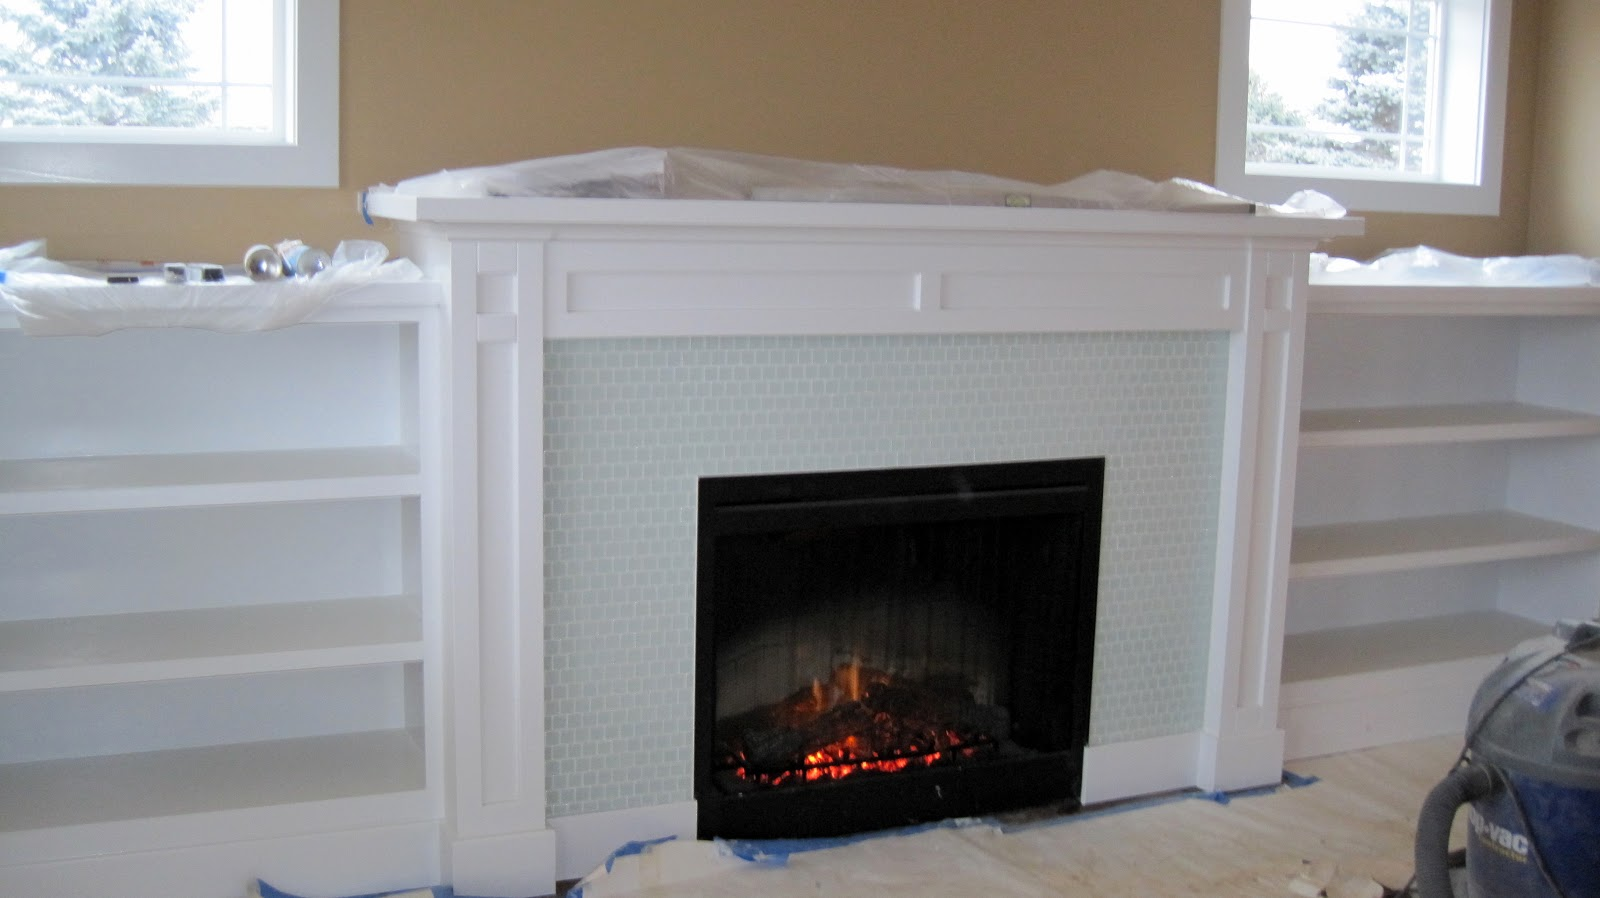 Tennyson Bookcase Electric Fireplace White Electric Fireplace With Bookcase Architectural Design